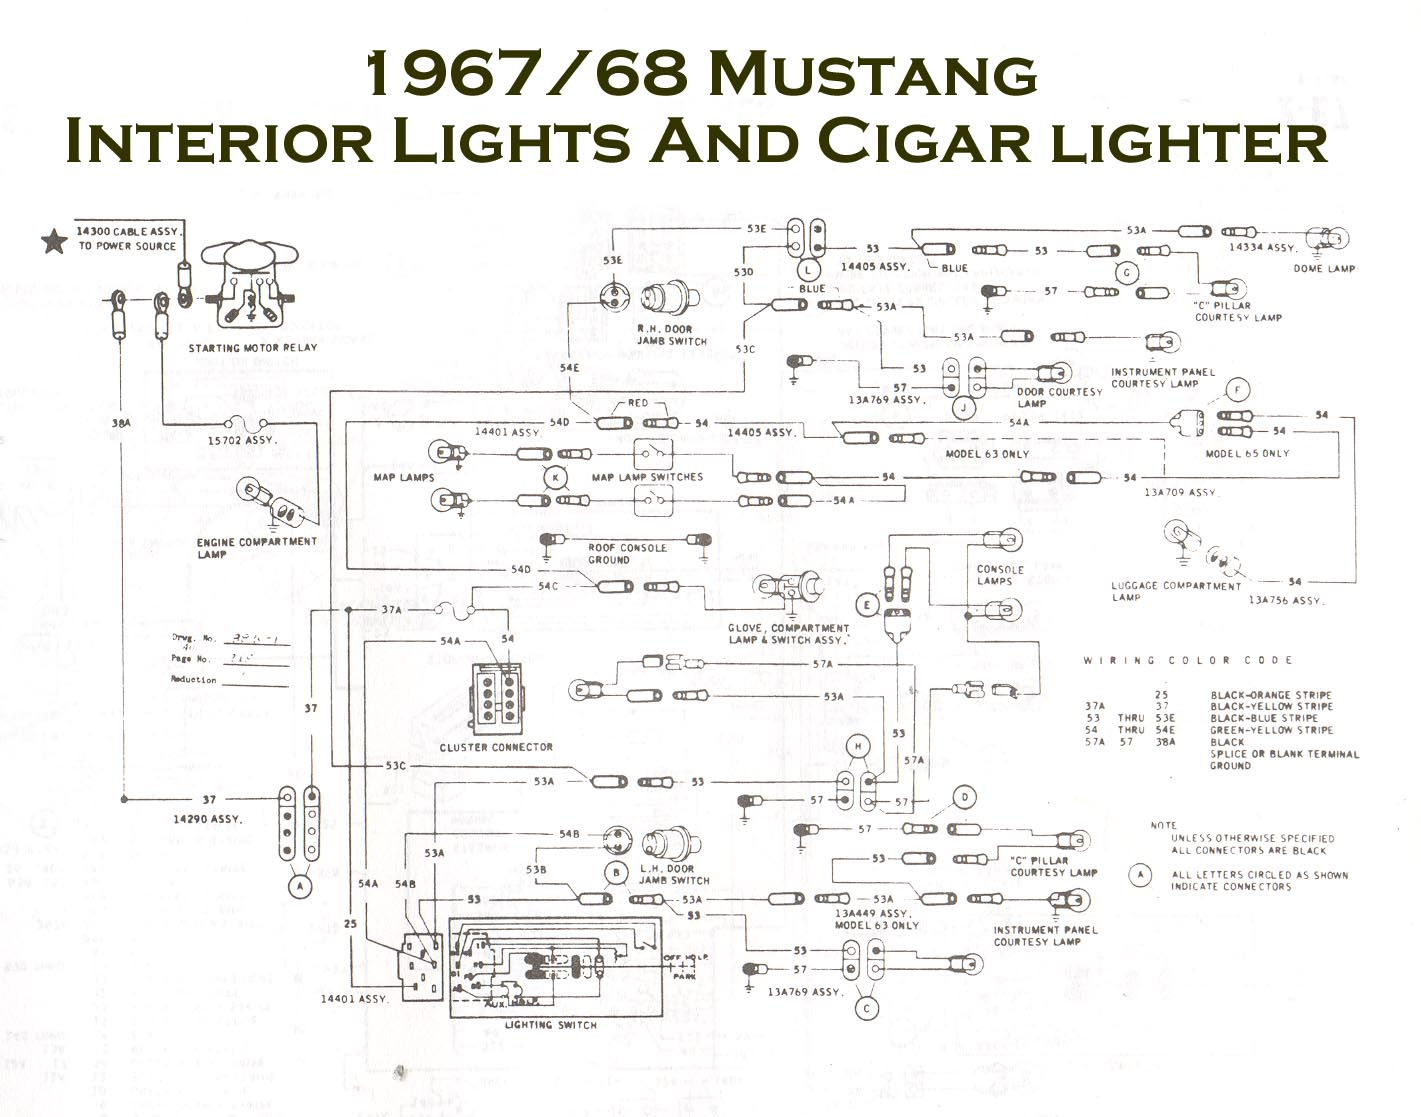 1967 68_console_wiring_diagram vintage mustang wiring diagrams 2000 ford mustang ignition wiring diagram at creativeand.co